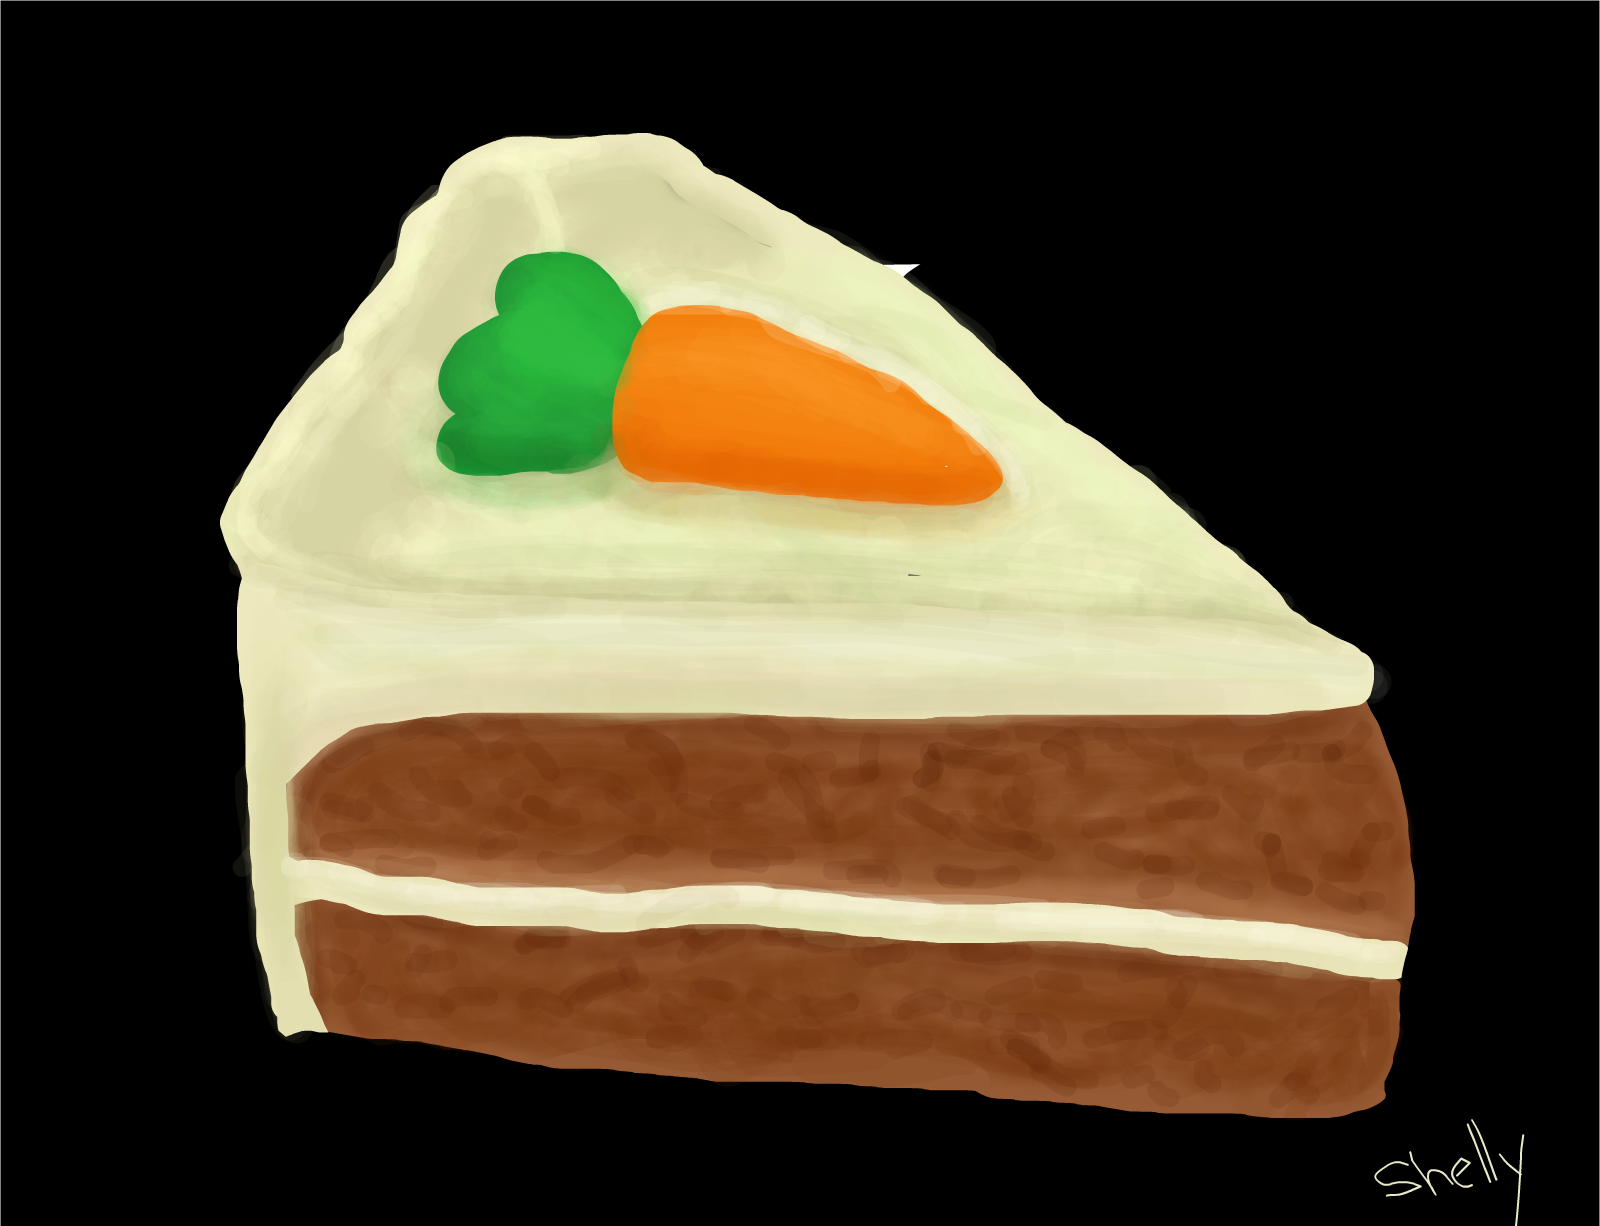 Carrot cake clipart 20 free Cliparts | Download images on ...